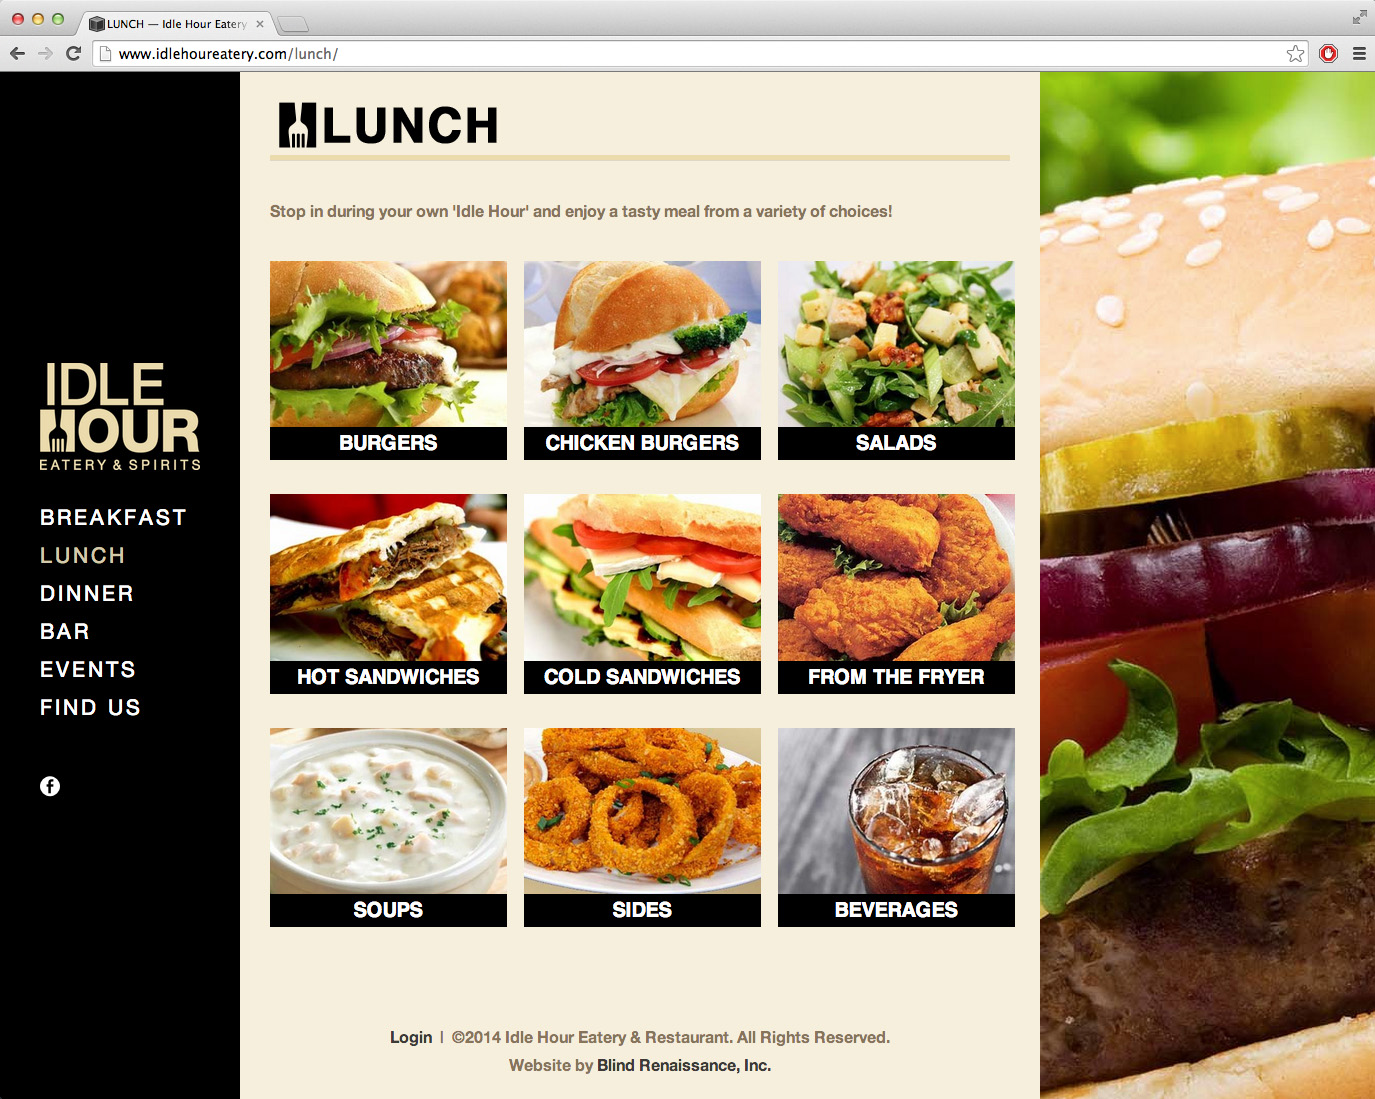 Breakfast, lunch, and dinner menus are easy to navigate with enticing imagery